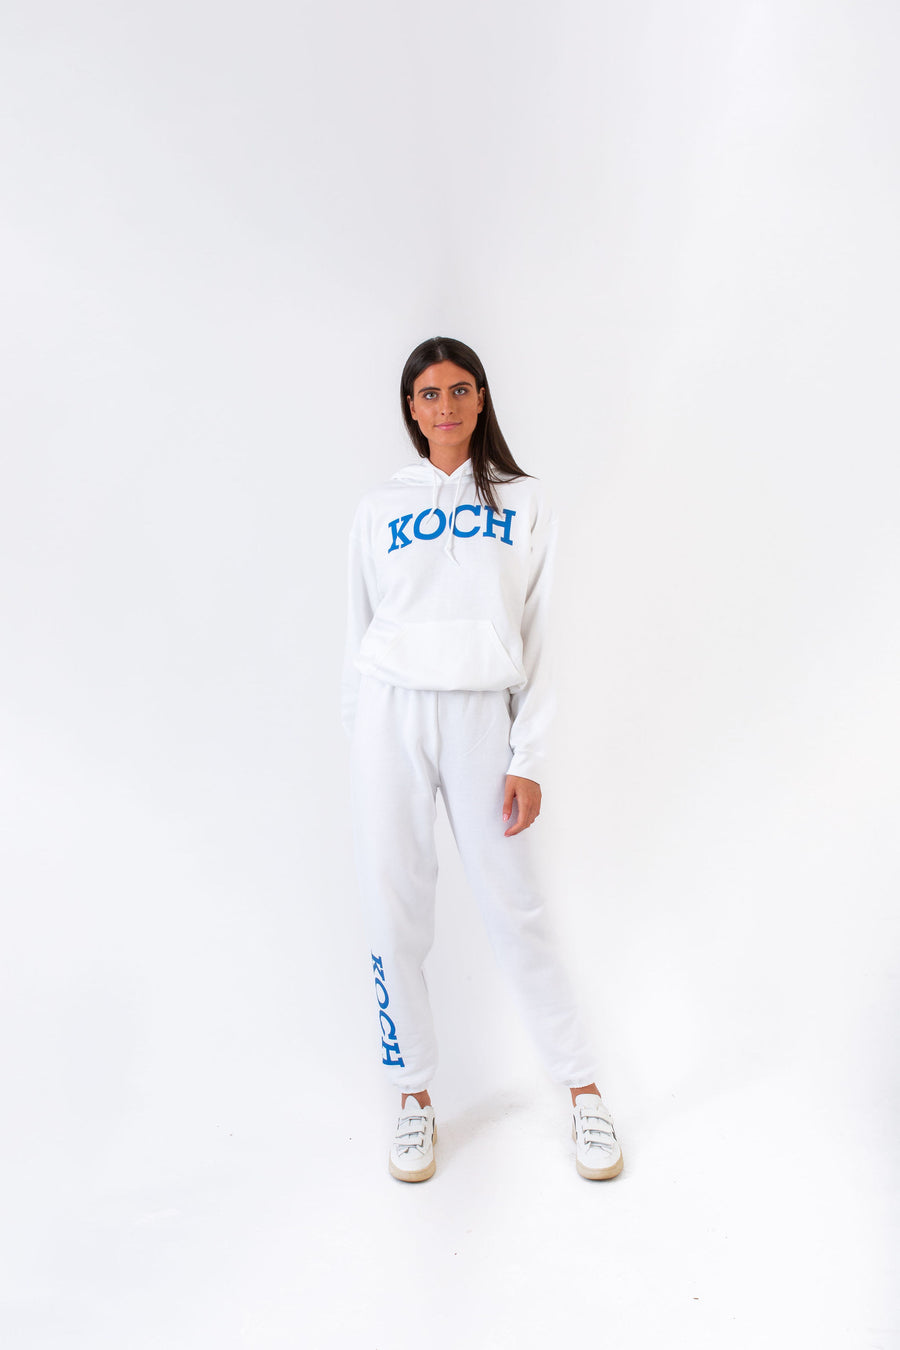 KOCH SWEATSUIT *LIMITED*EDITION*